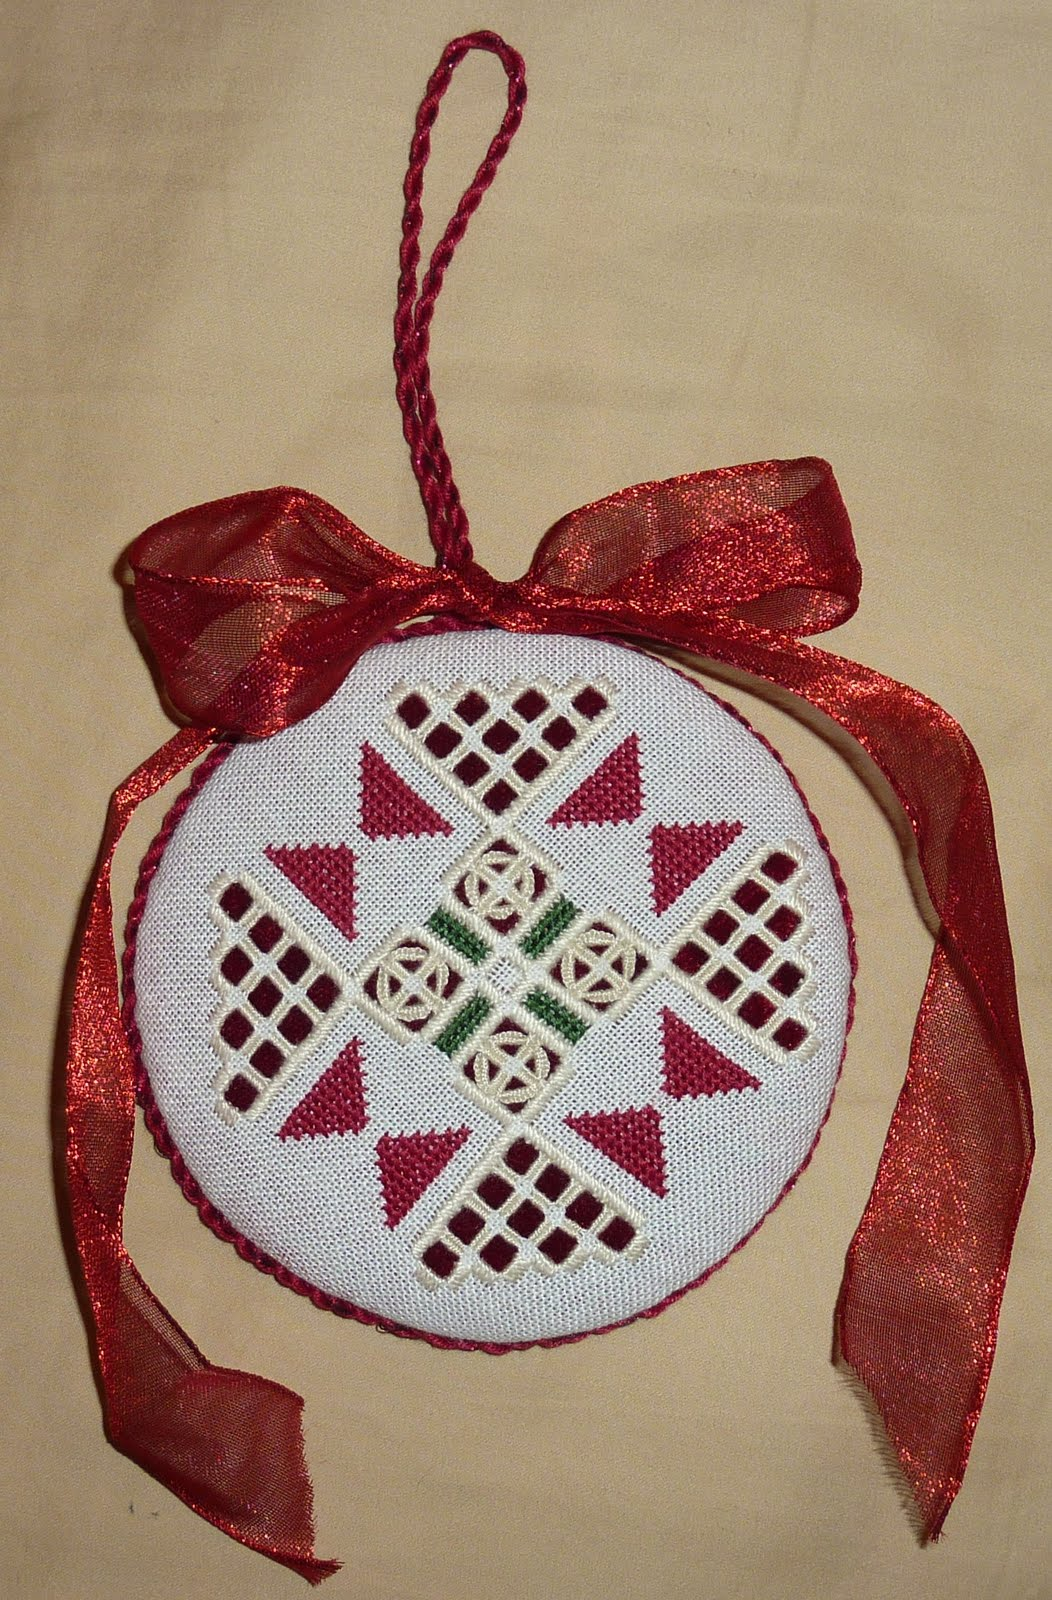 Summer\'s Snippets: Some Christmas stitching...